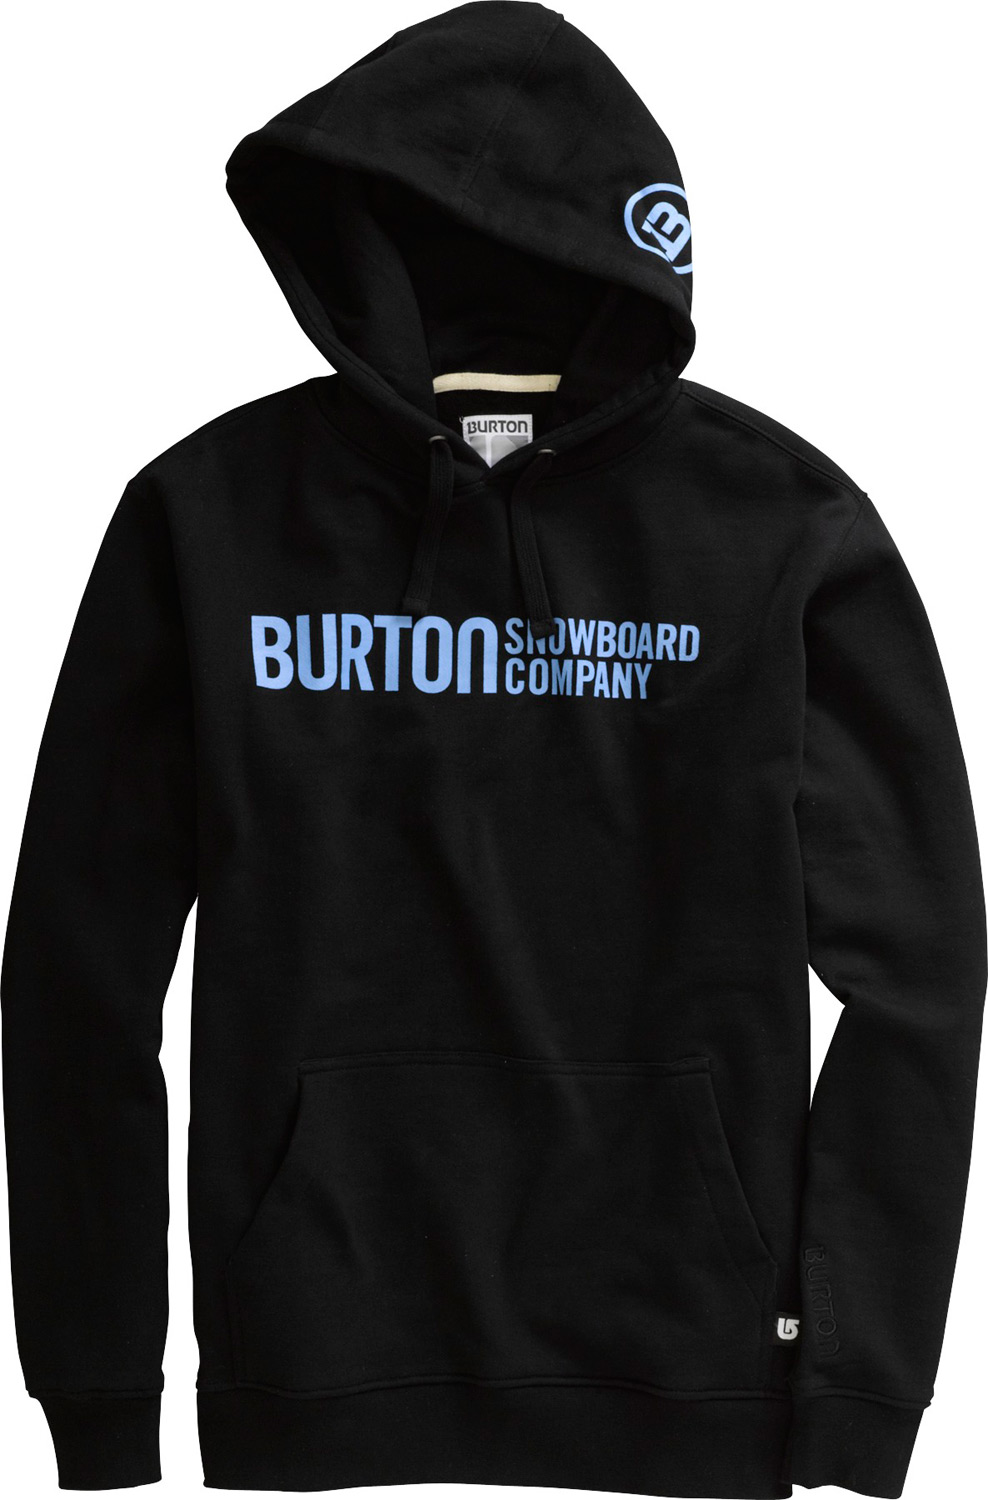 Snowboard Key Features of the Burton Classic Horizontal Hoodie: 80% Cotton, 20% Polyester, 300G Fleece Classic Horizontal Logo Print on Chest Custom Word Mark Label on Draw Cord Signature Fit - $33.95